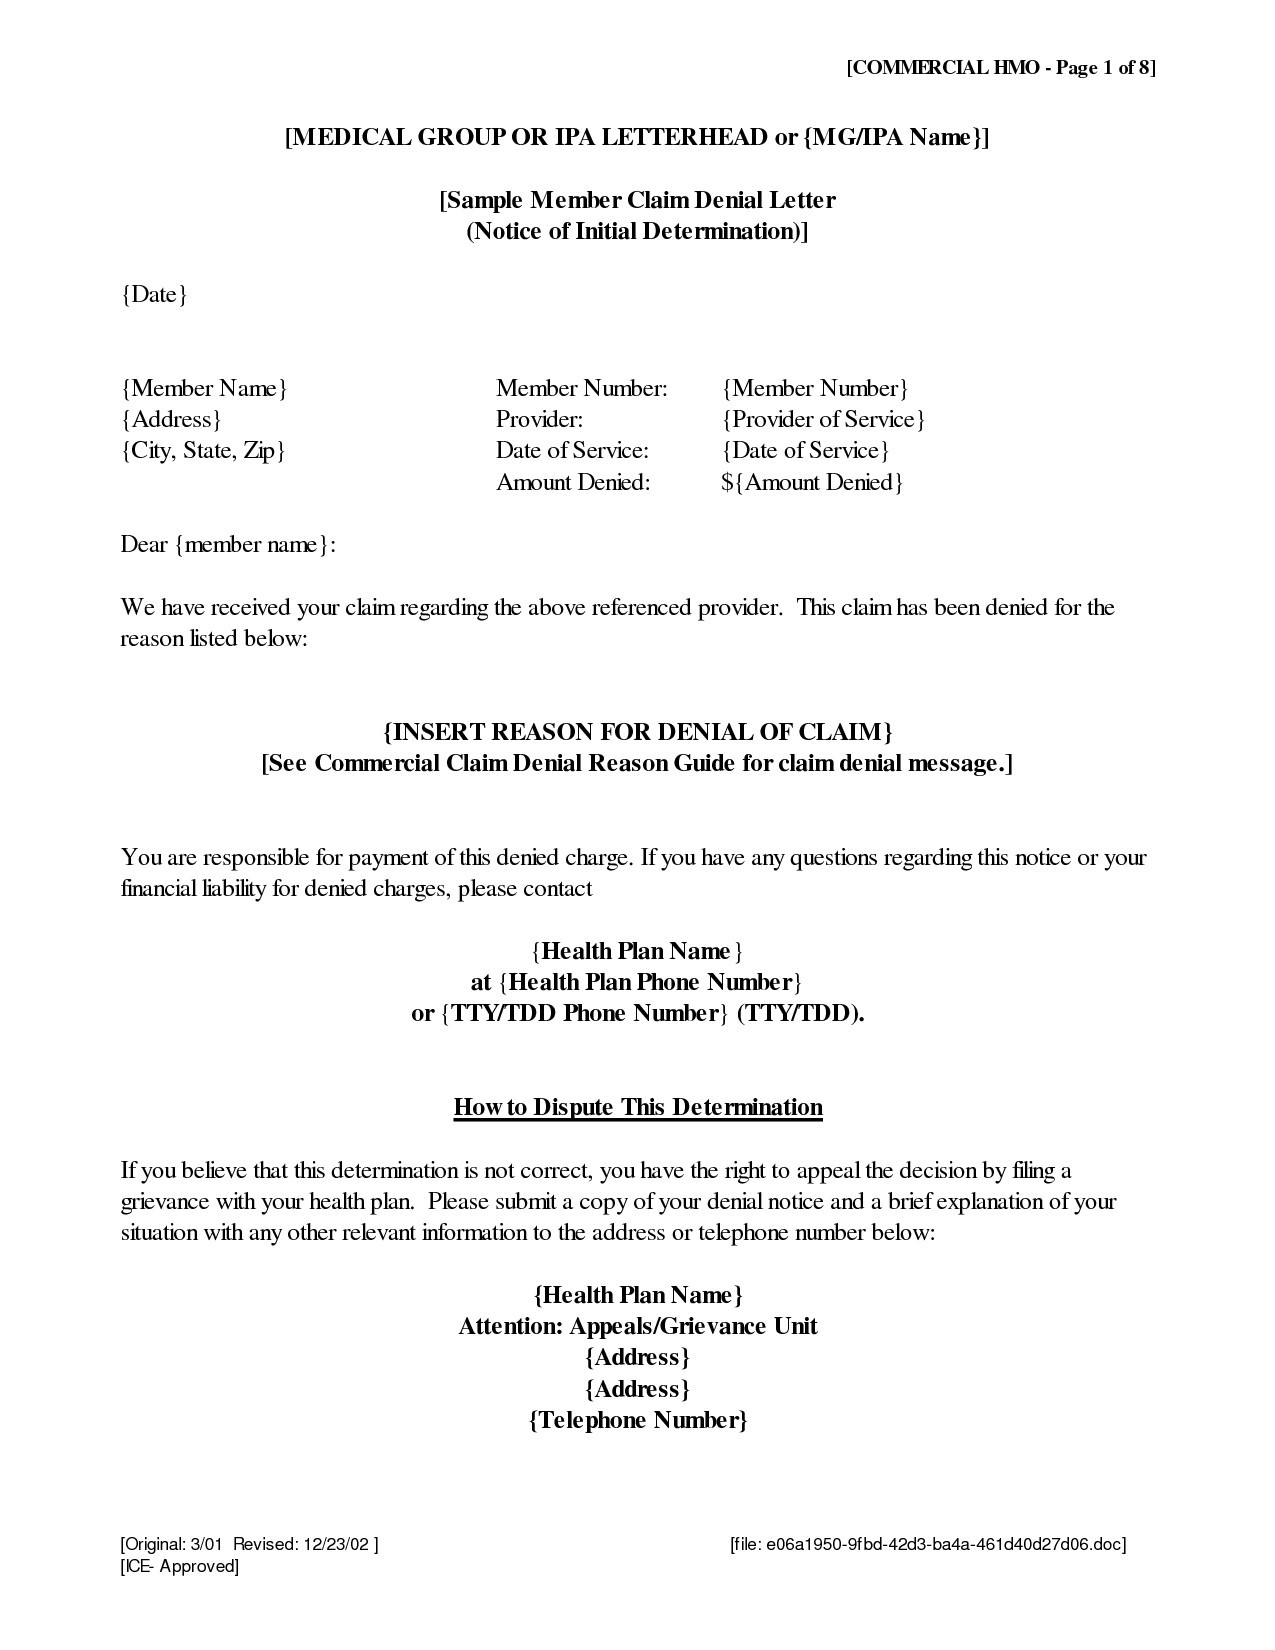 Medical Claim Appeal Letter Template - Appeal Letter Template Medical New Gallery Title Insurance Claim